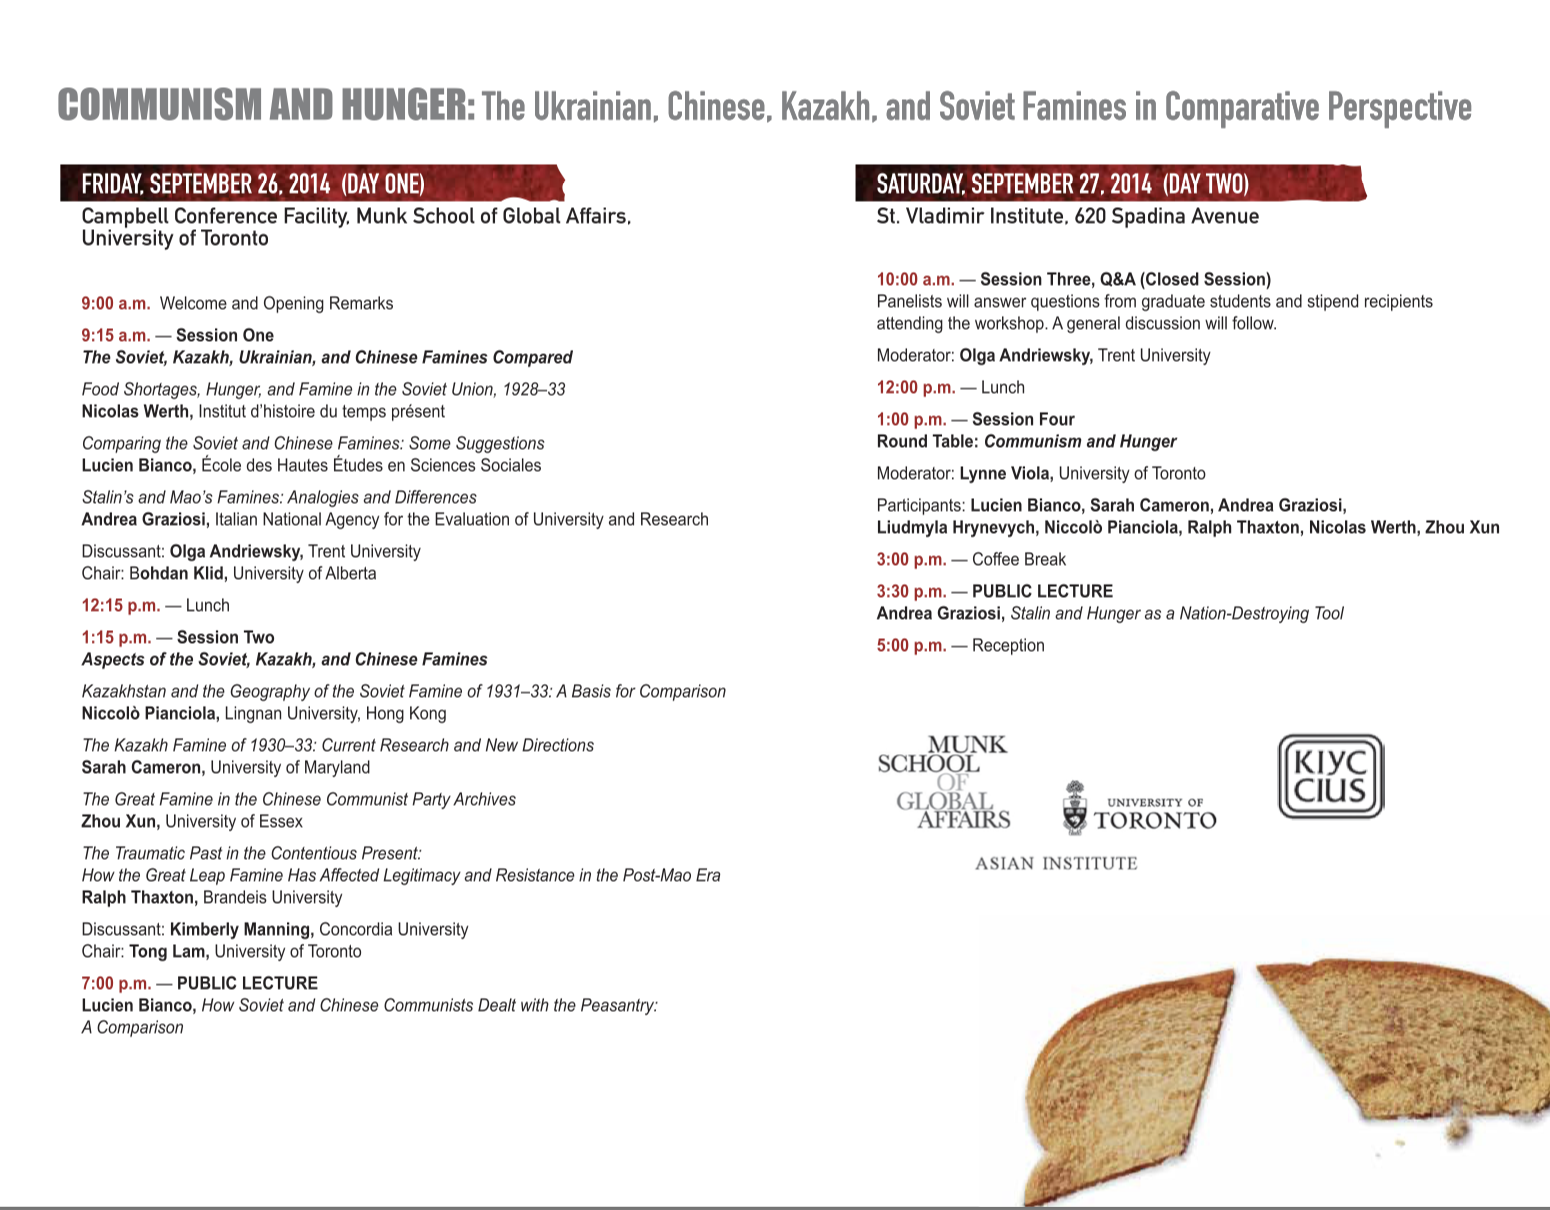 Communism and Hunger: The Ukrainian, Chinese, Kazakh, and Soviet Famines in Comparative Perspective